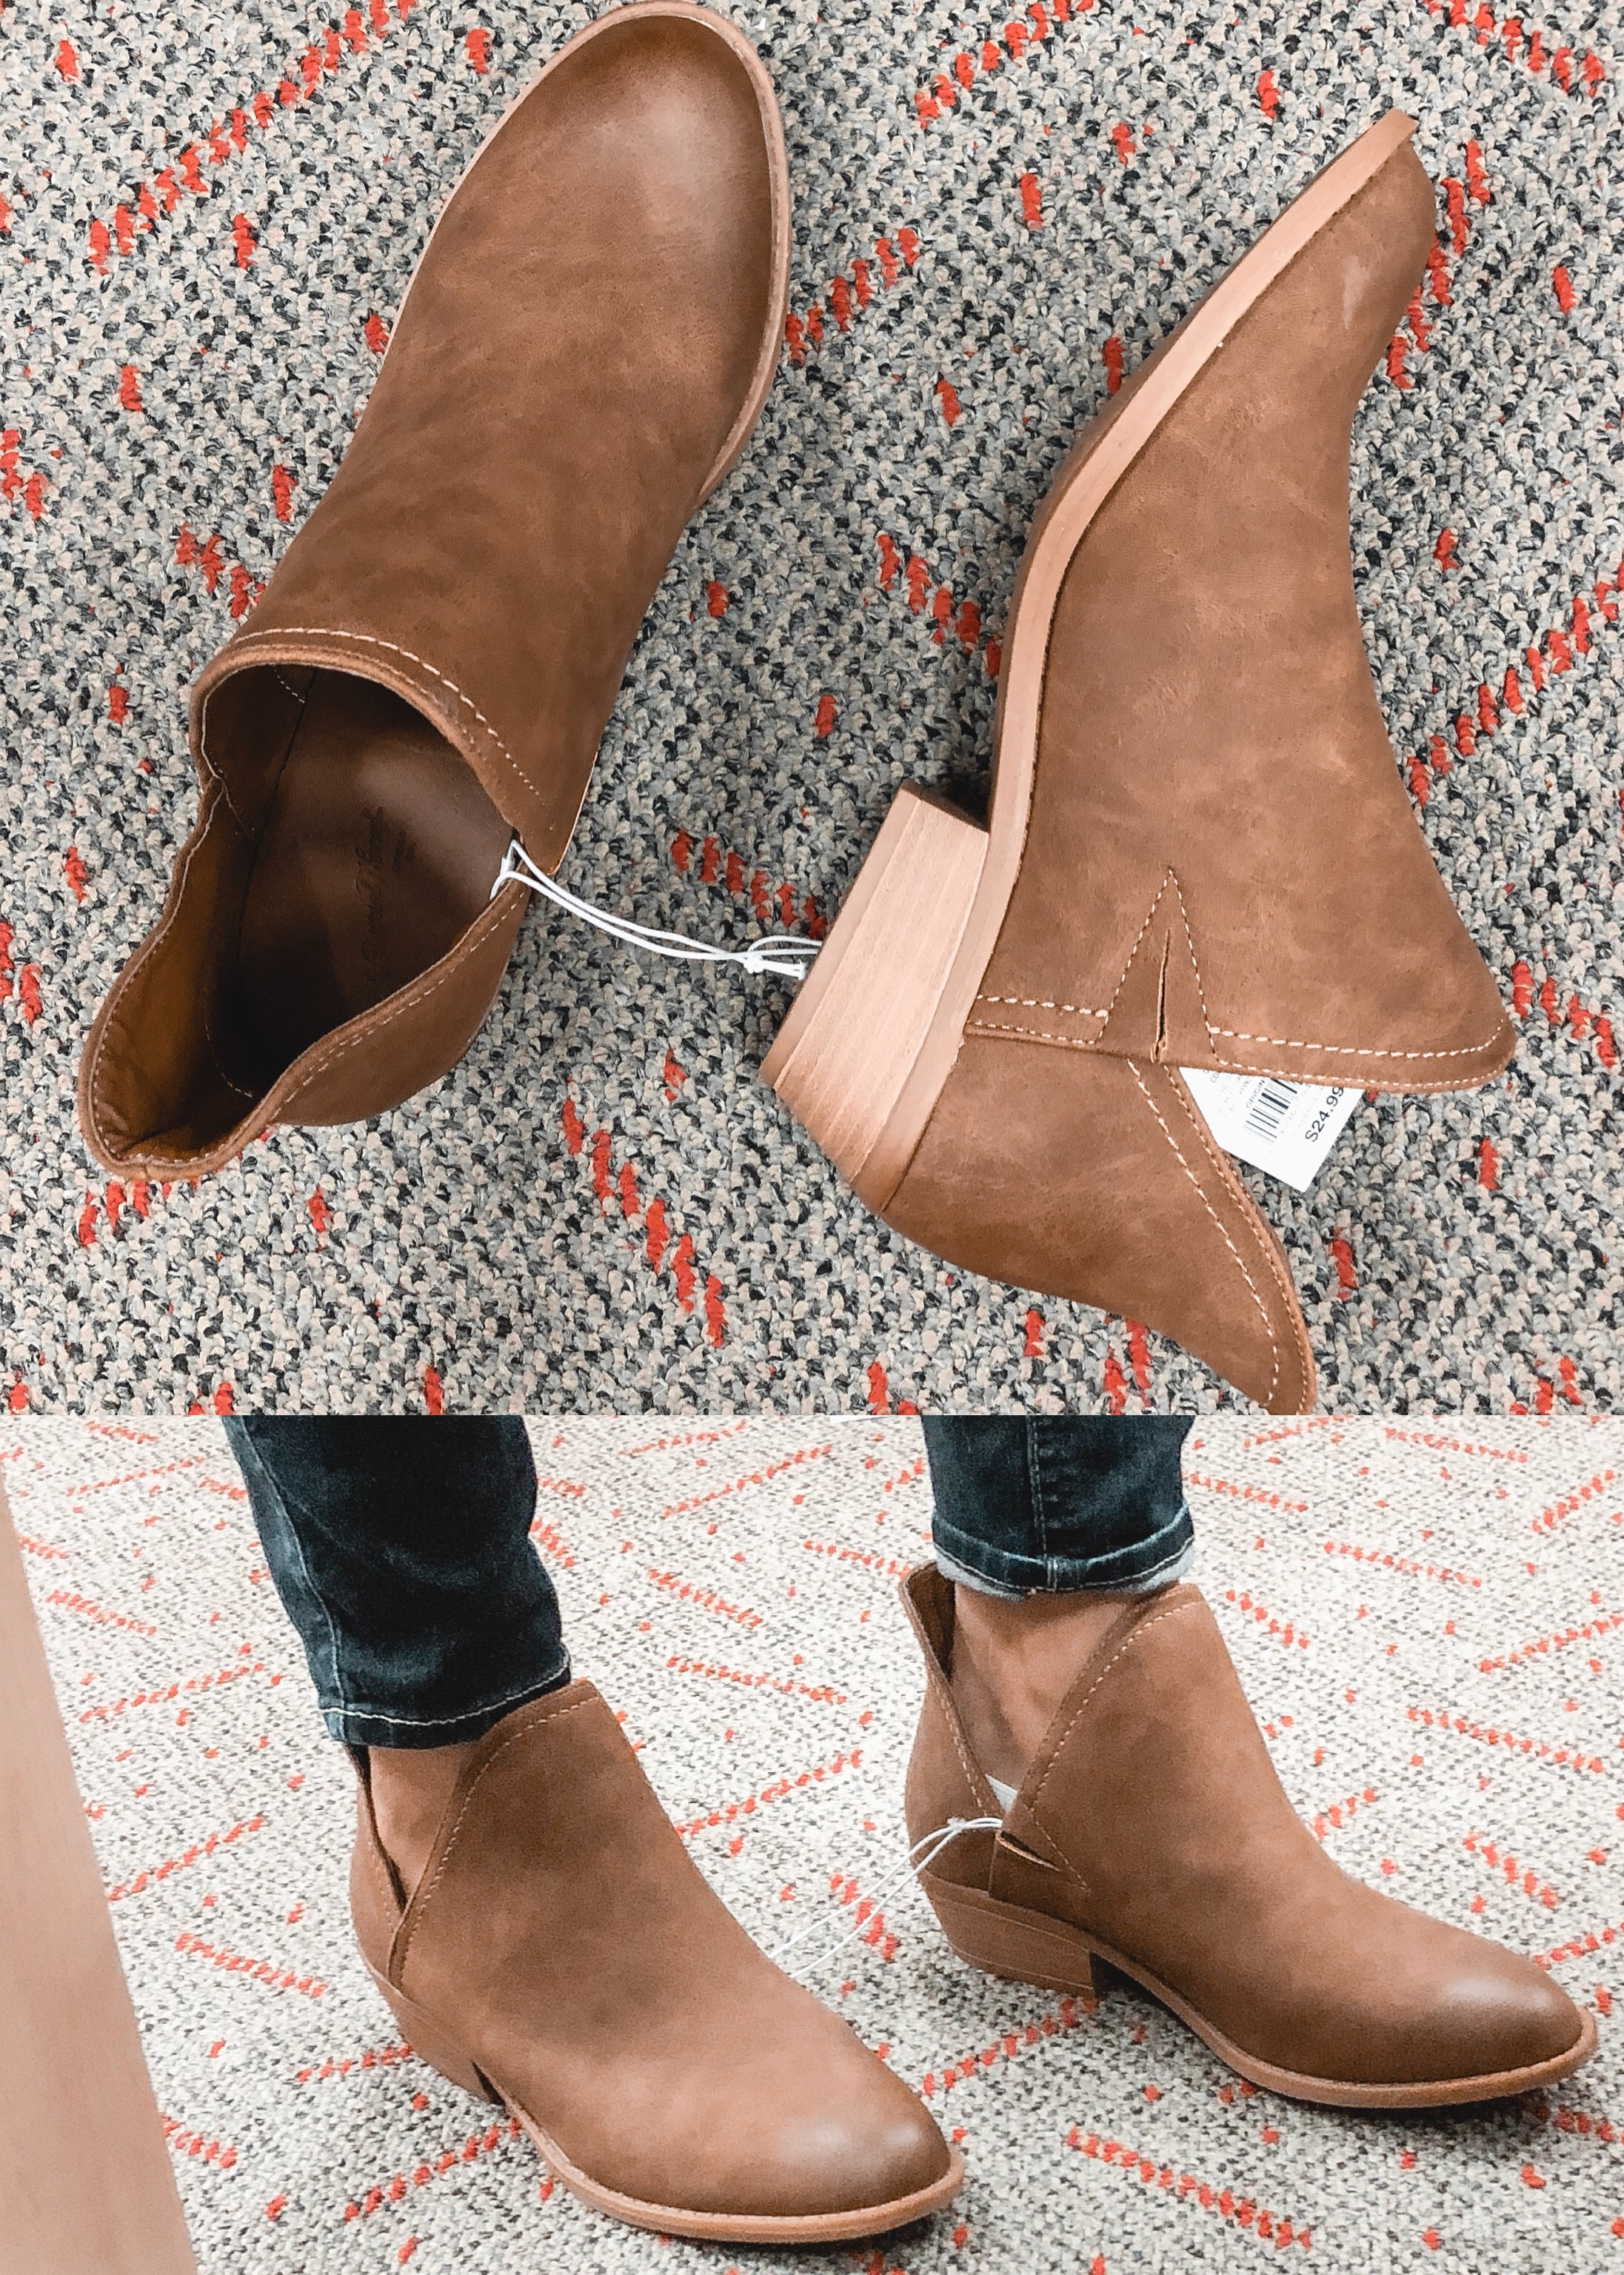 fall target booties - universal thread nora bootie | 9 pairs of target fall shoes reviewed! bylaurenm.com